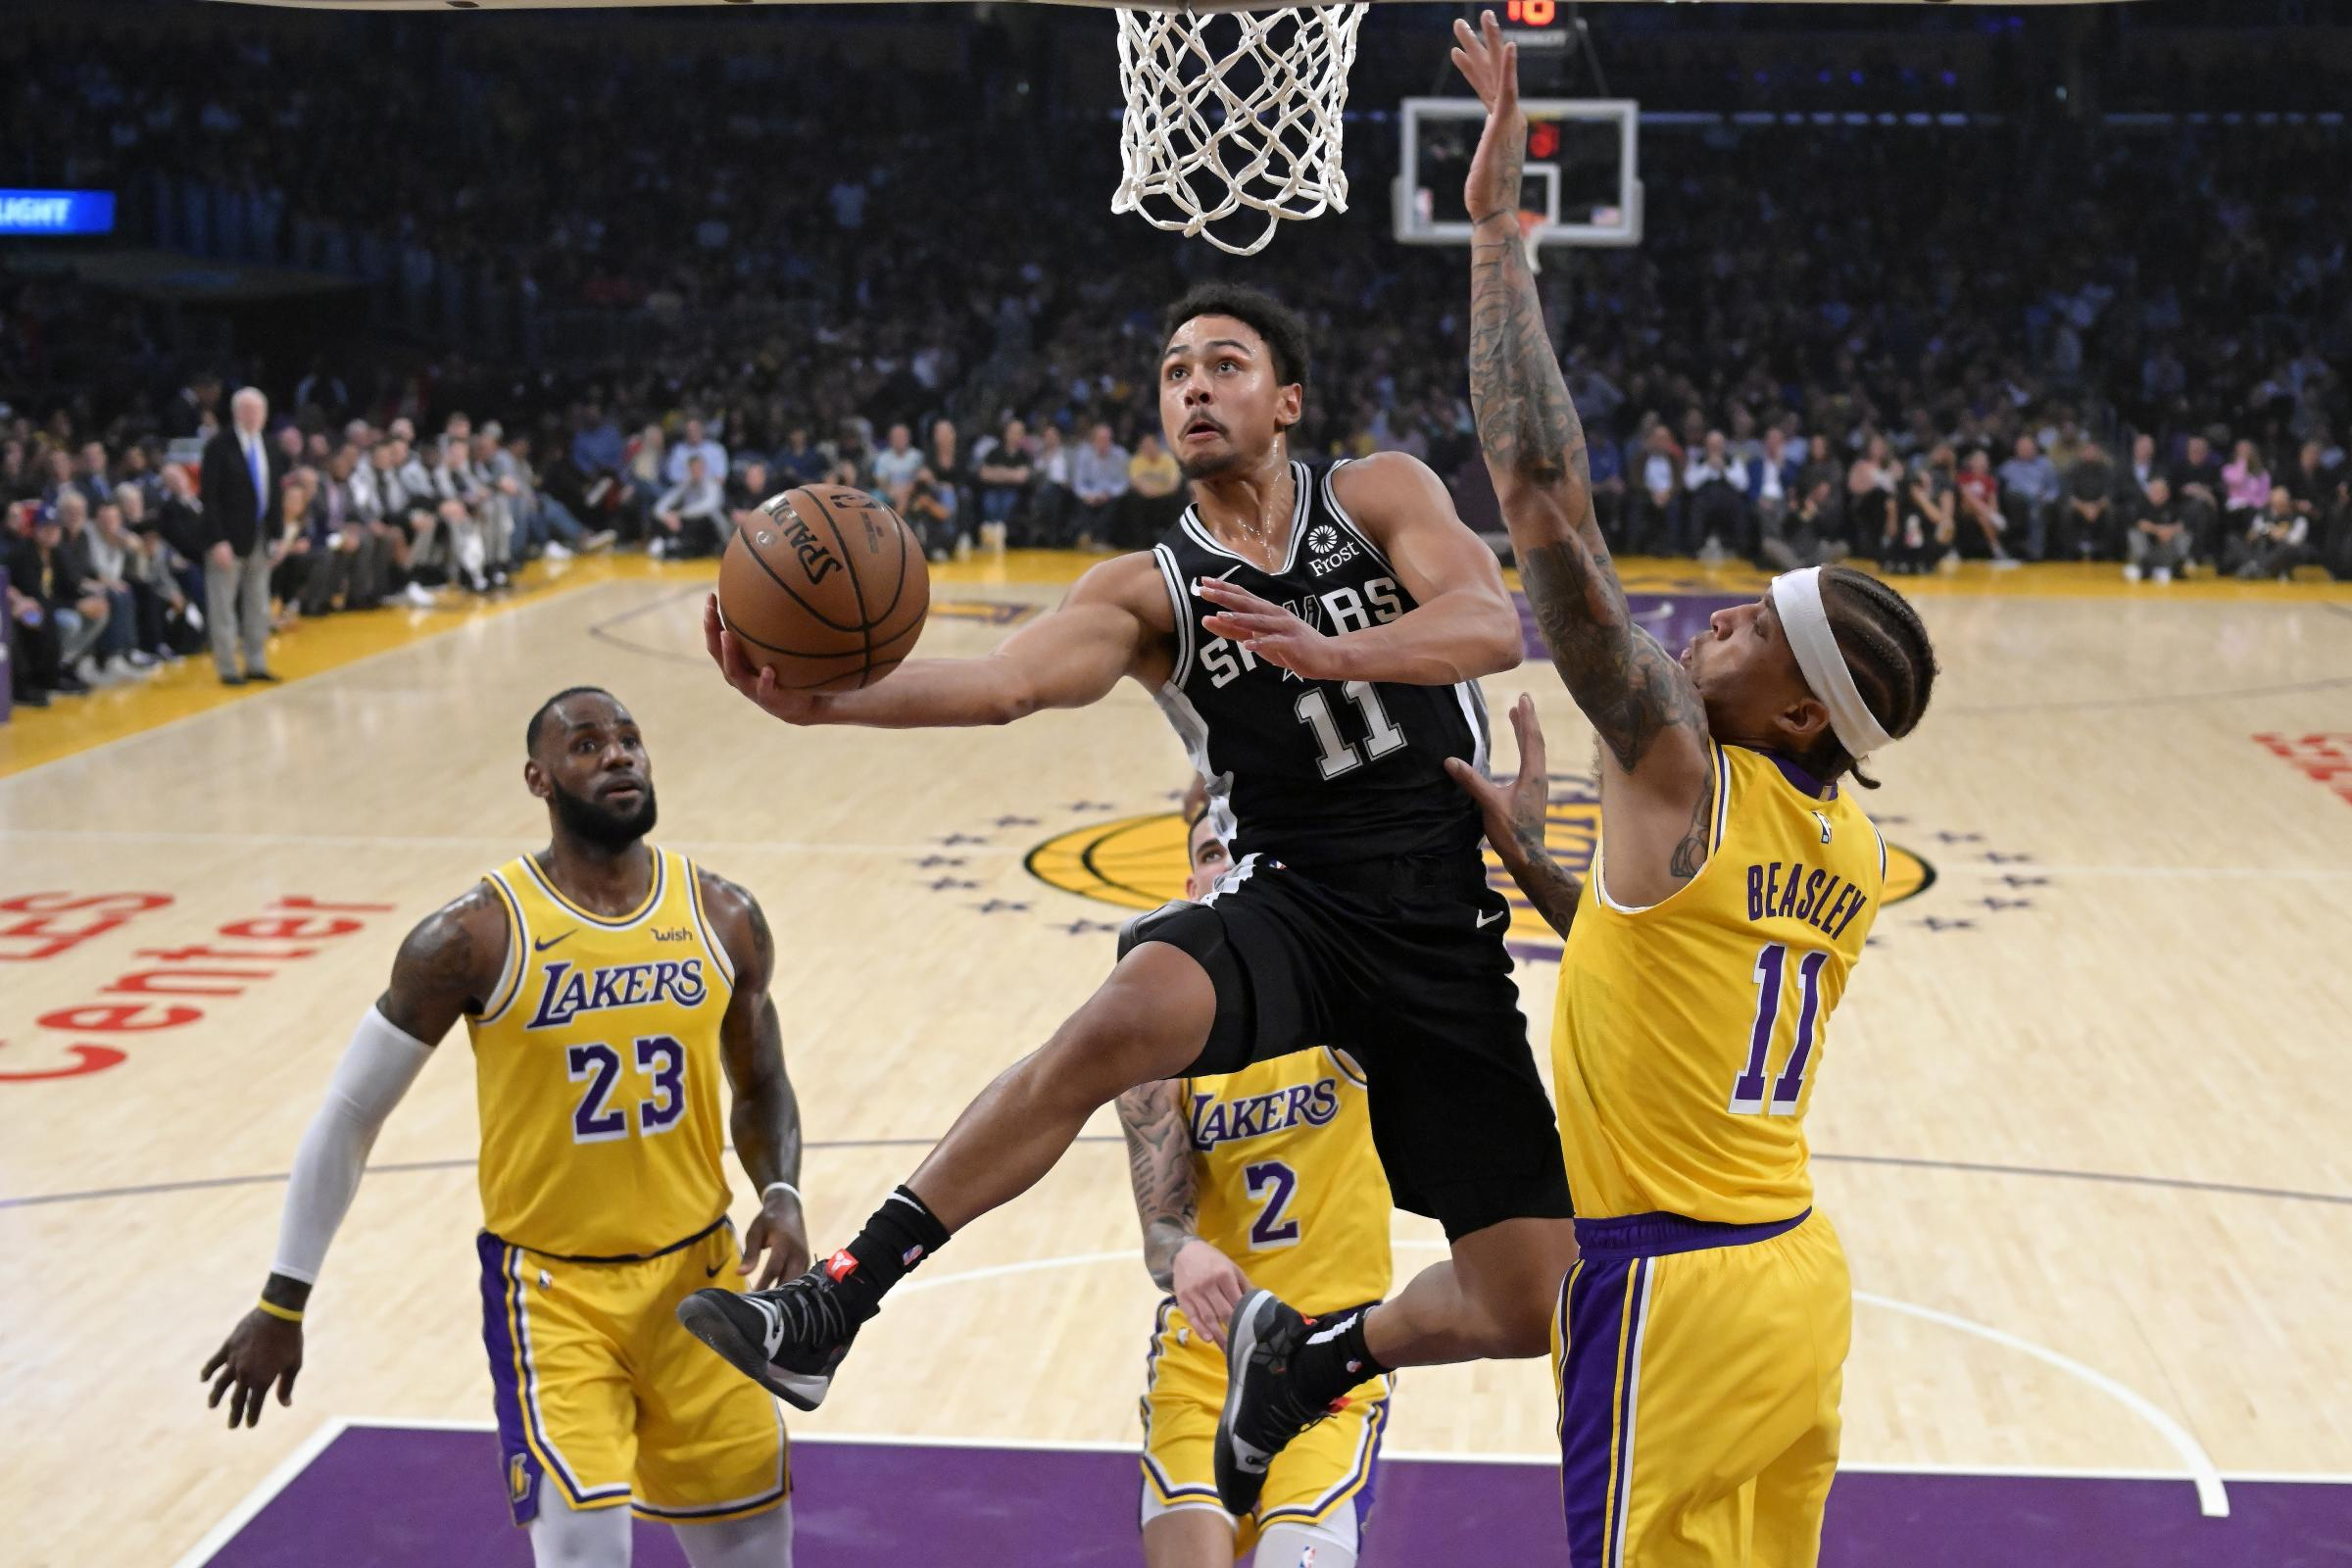 San Antonio Spurs downed the Lakers in a thriller